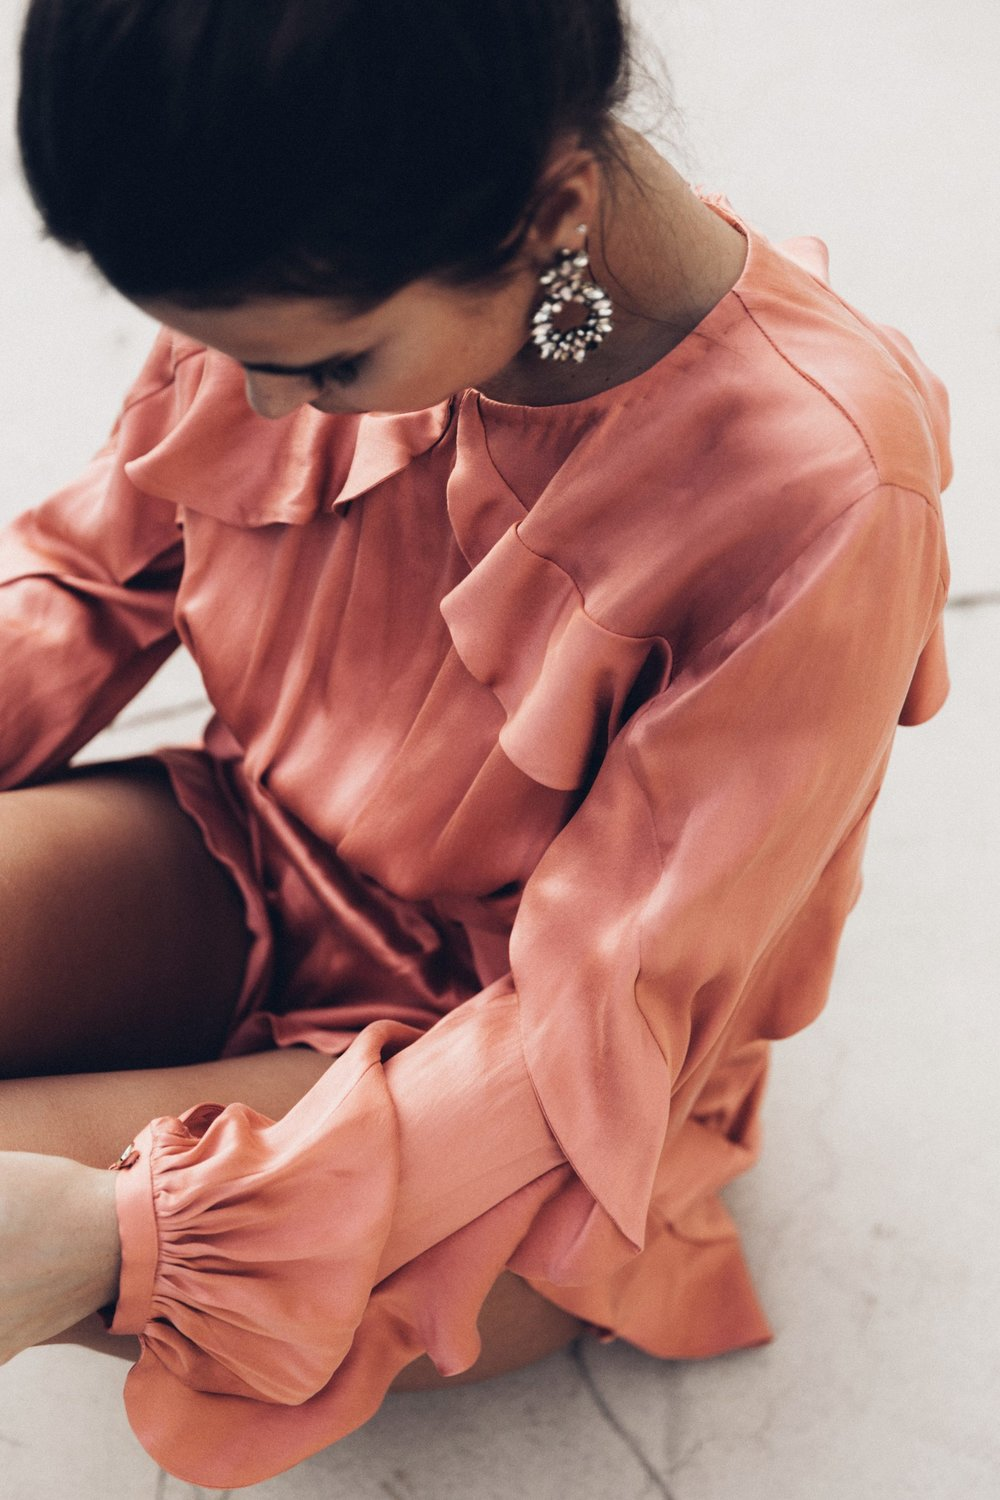 Pink_Jumpsuit-Zimmermann-Topknot-Statement_Earrings-Street_Style-Palm_Springs-Outfit-Collage_Vintage-46-1800x2700.jpg